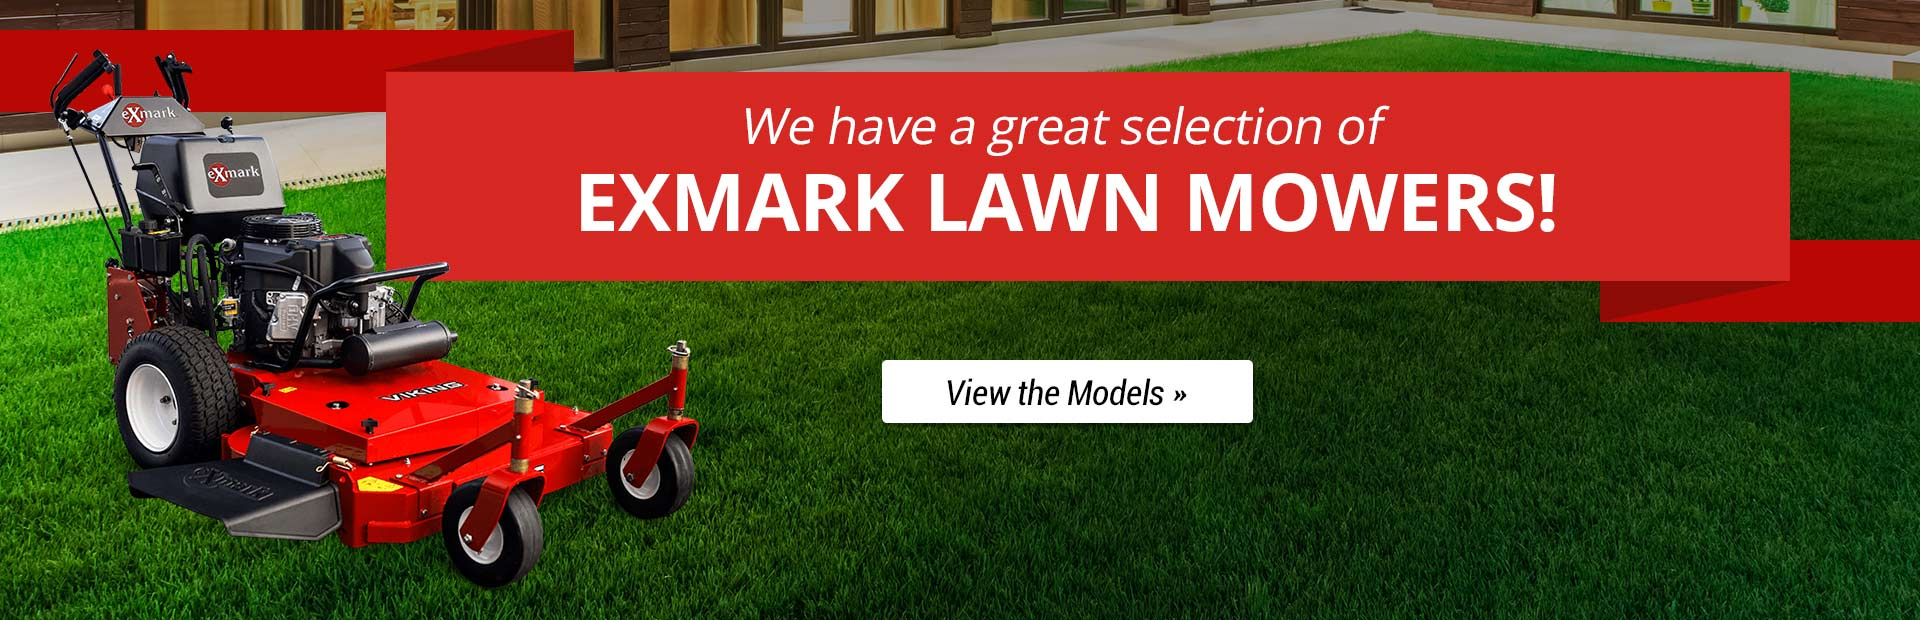 We have a great selection of Exmark lawn mowers!